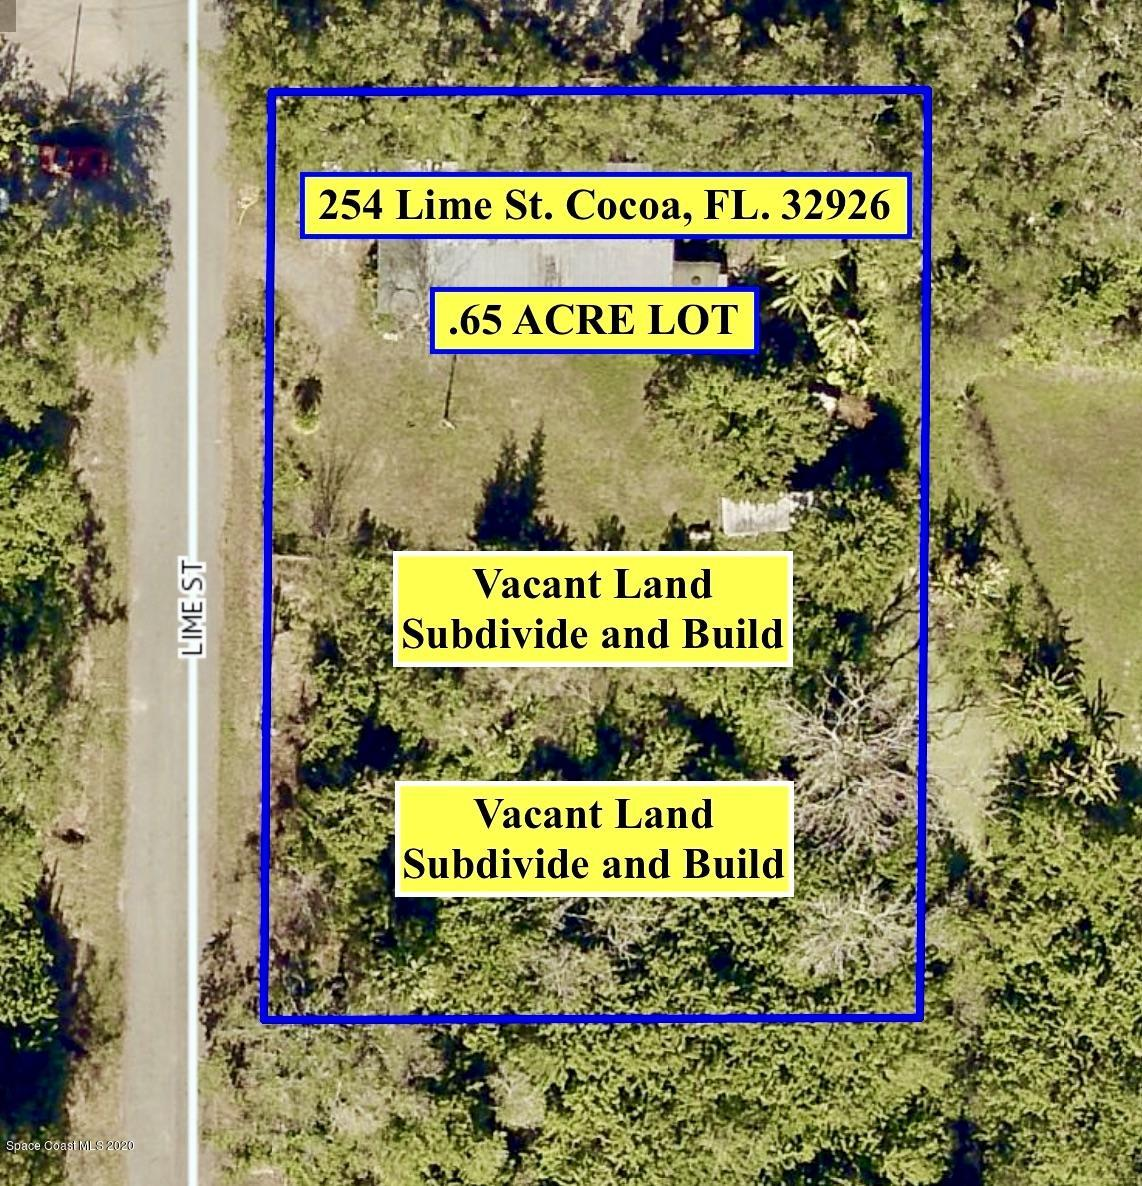 Home on .65 ACRE LOT - Could Subdivide